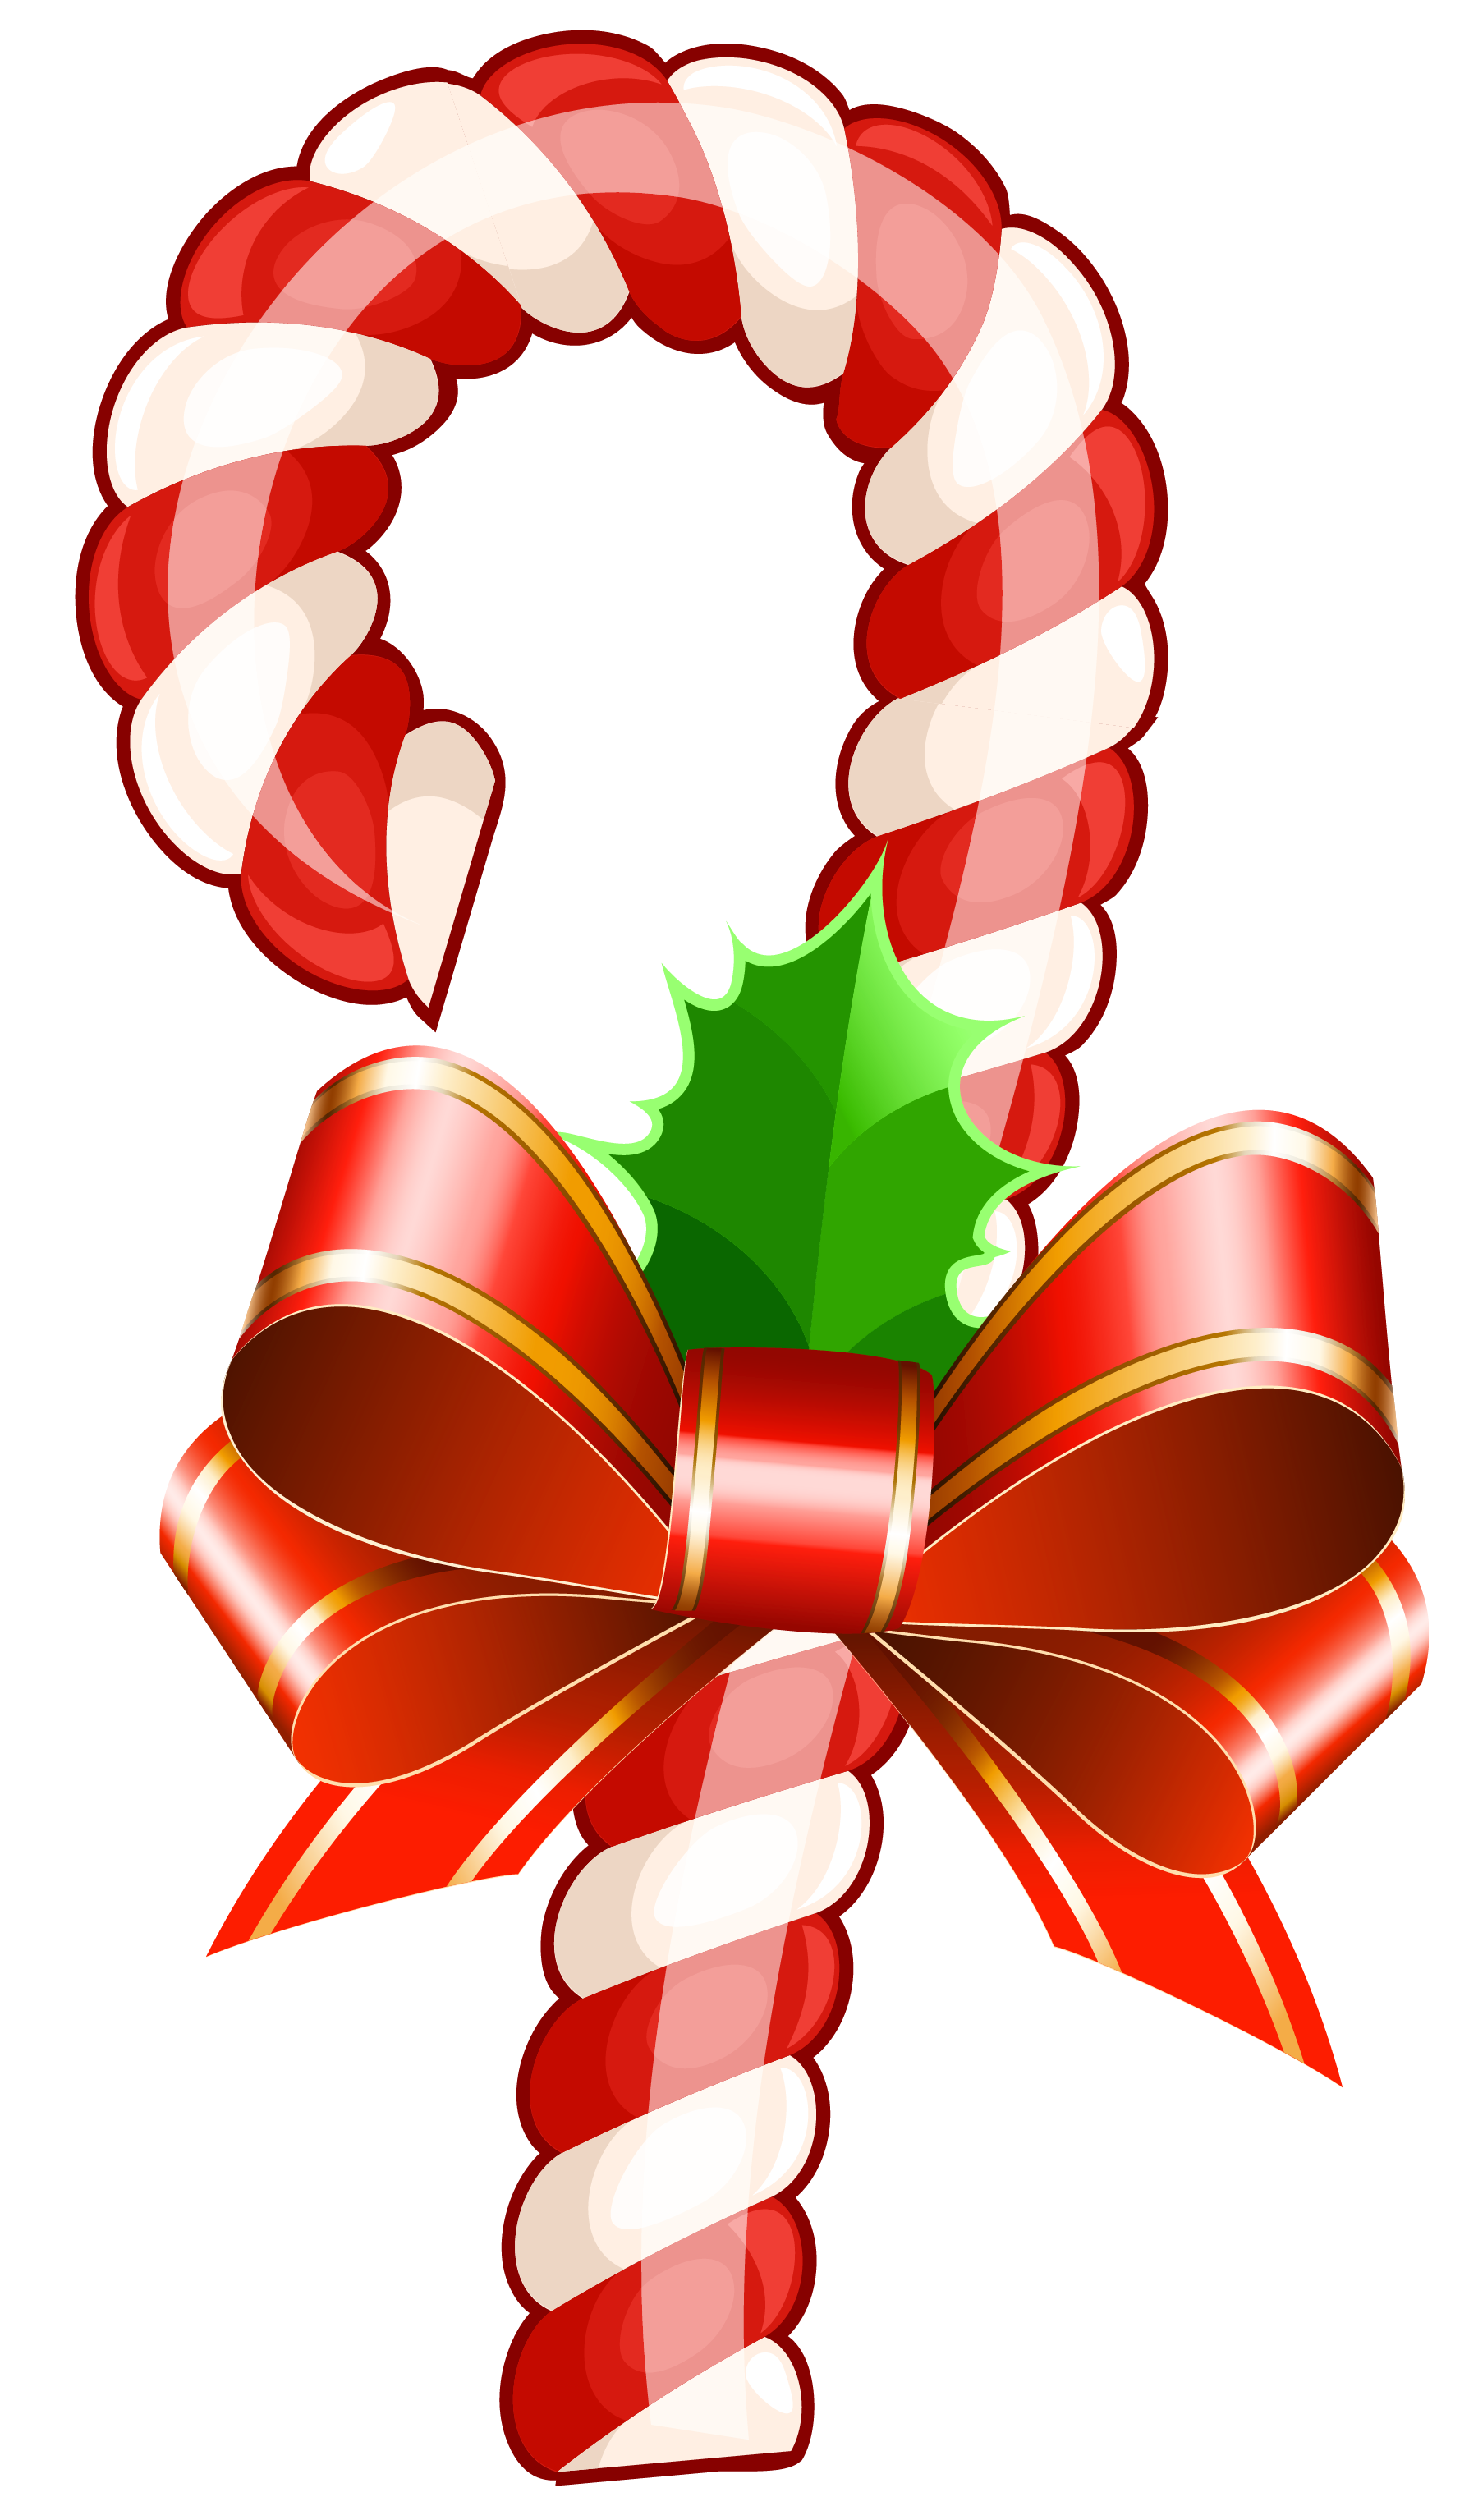 Candy Cane Clipart Png - Google Search-candy cane clipart png - Google Search-8